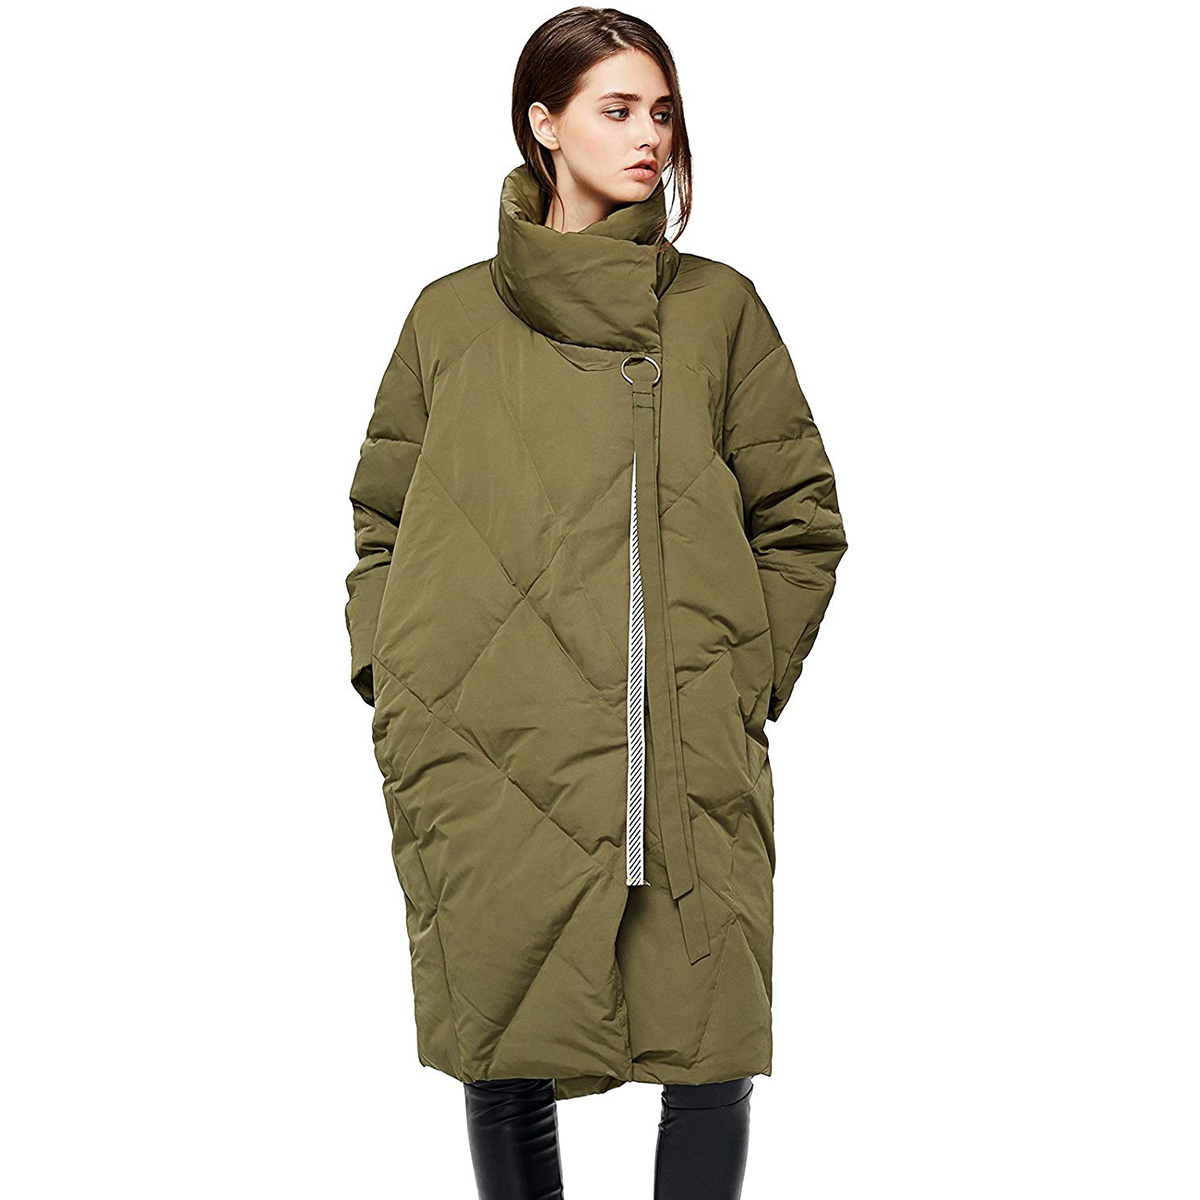 Anna&Chris Mid-Length Puffer Down Jacket with Stand Collar